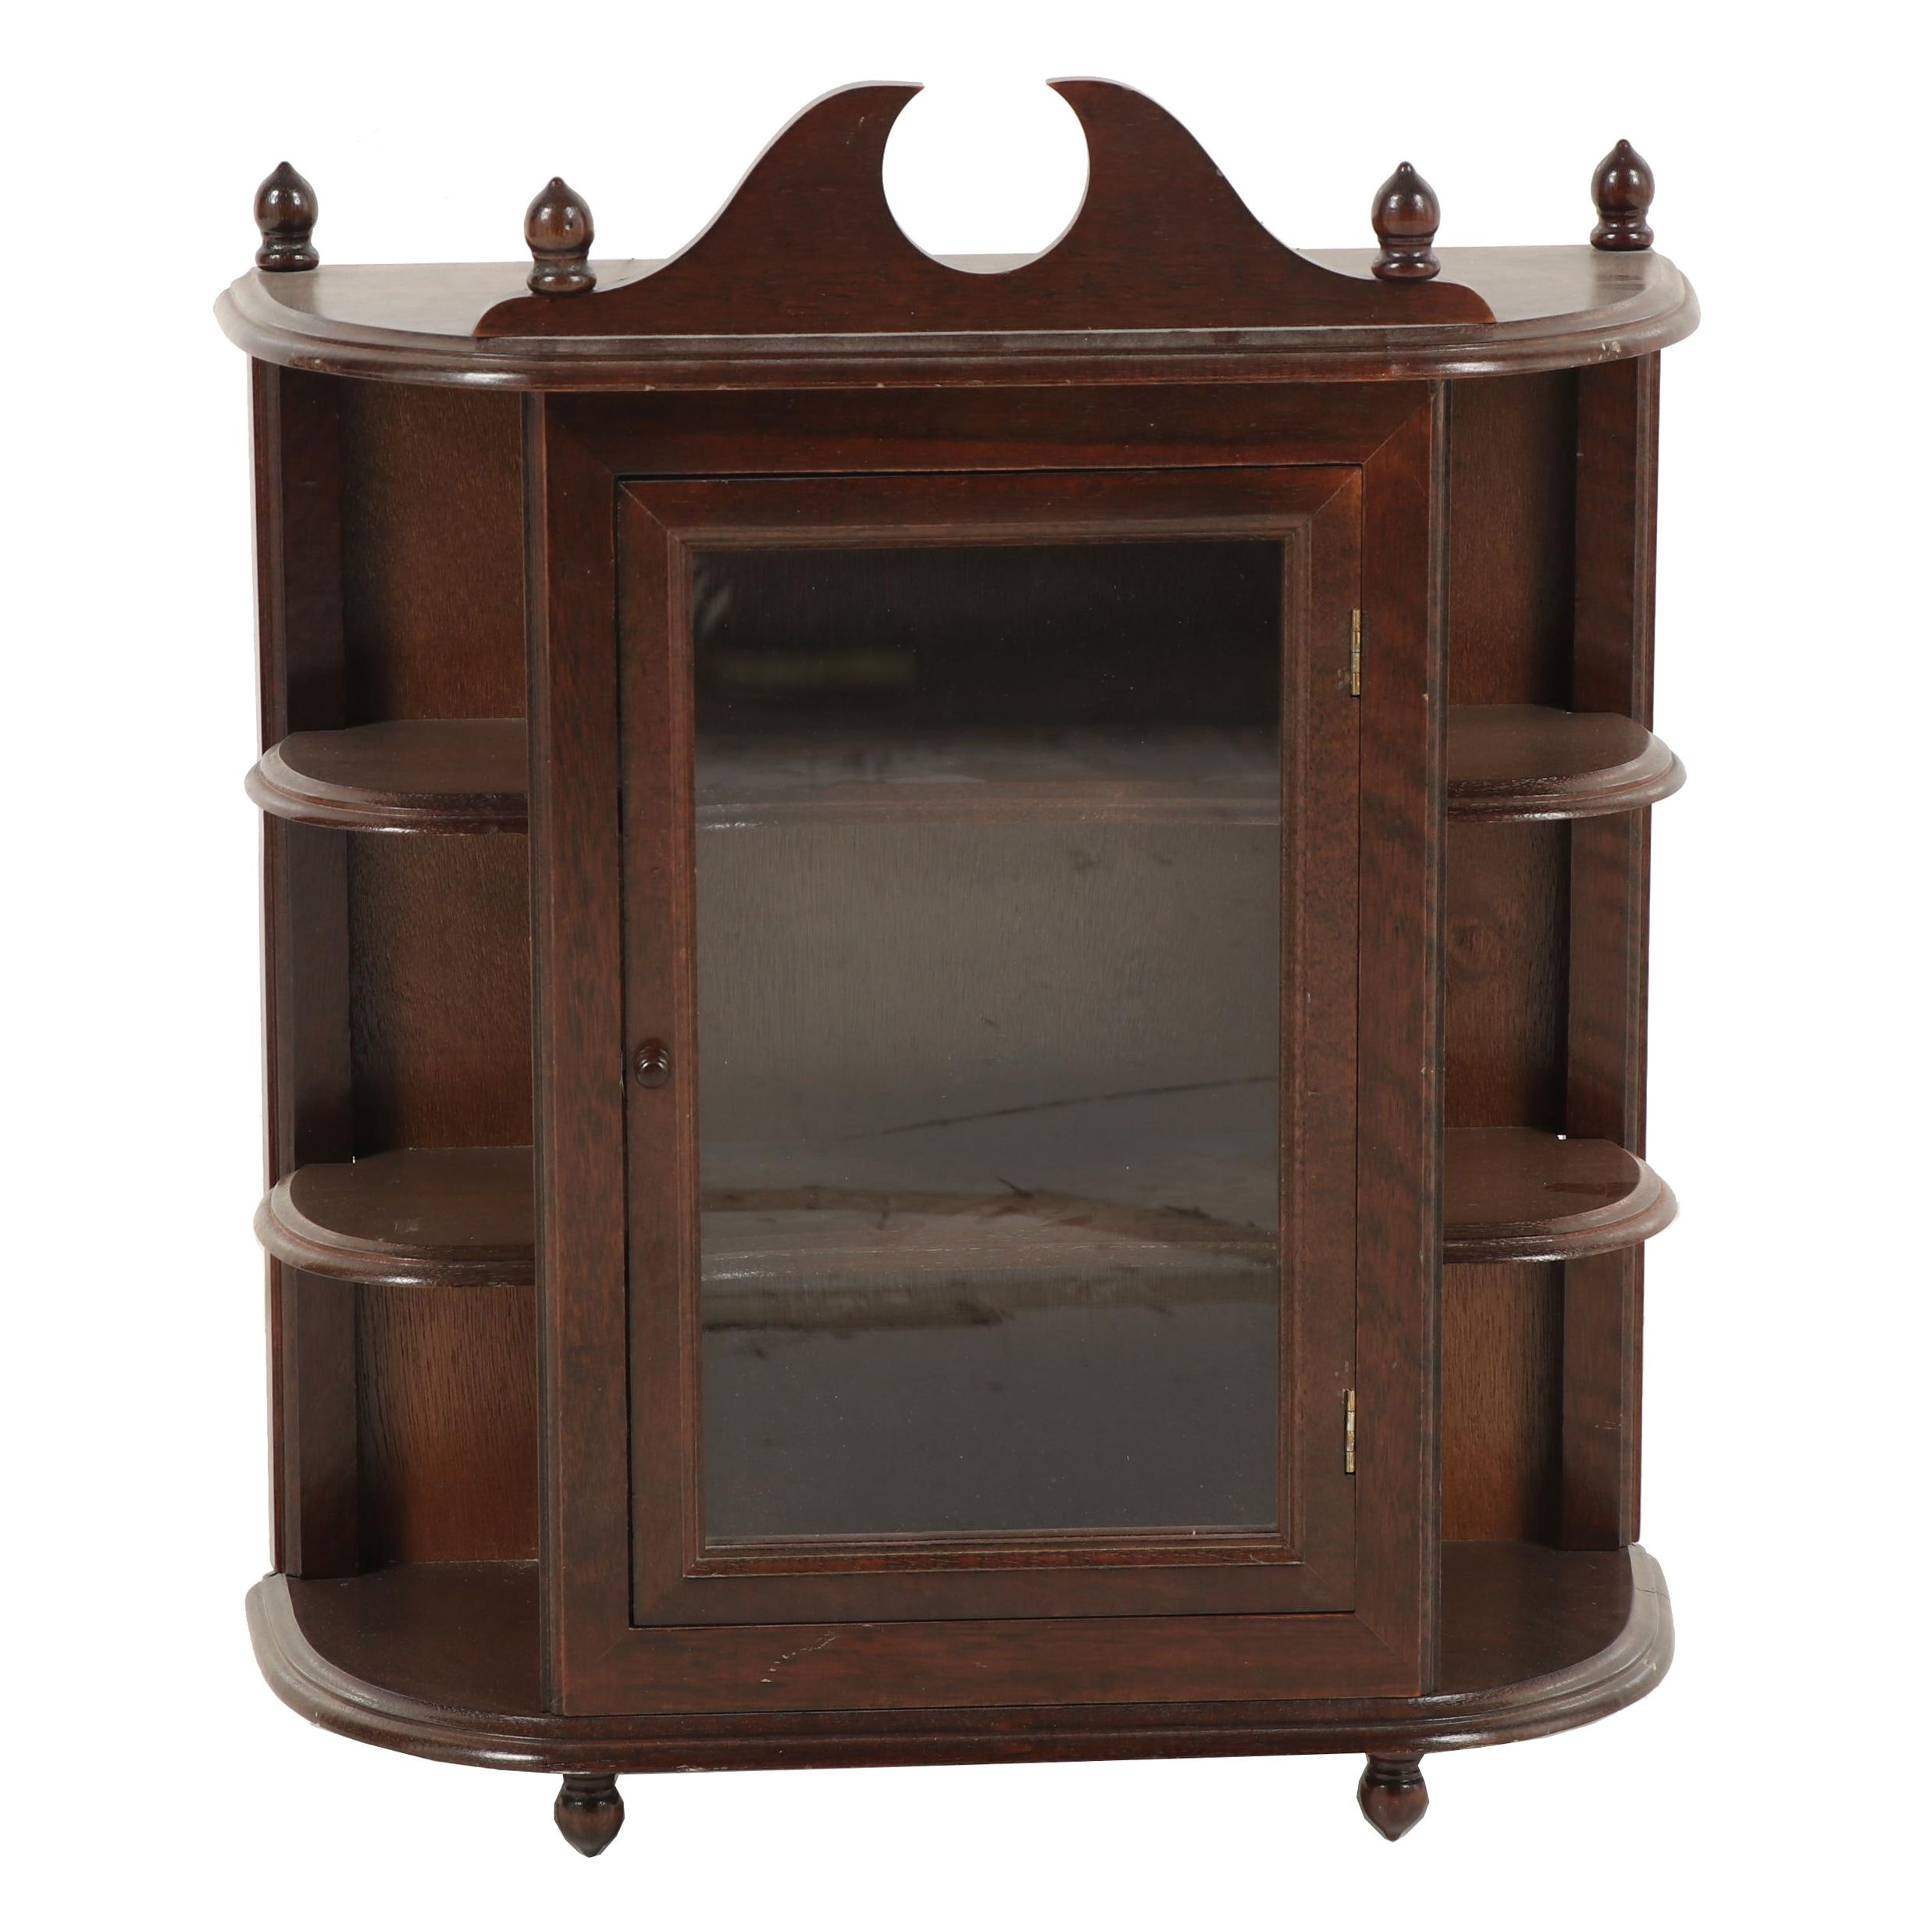 Federal Style Wooden Tabletop Display Cabinet, Mid to Late 20th Century